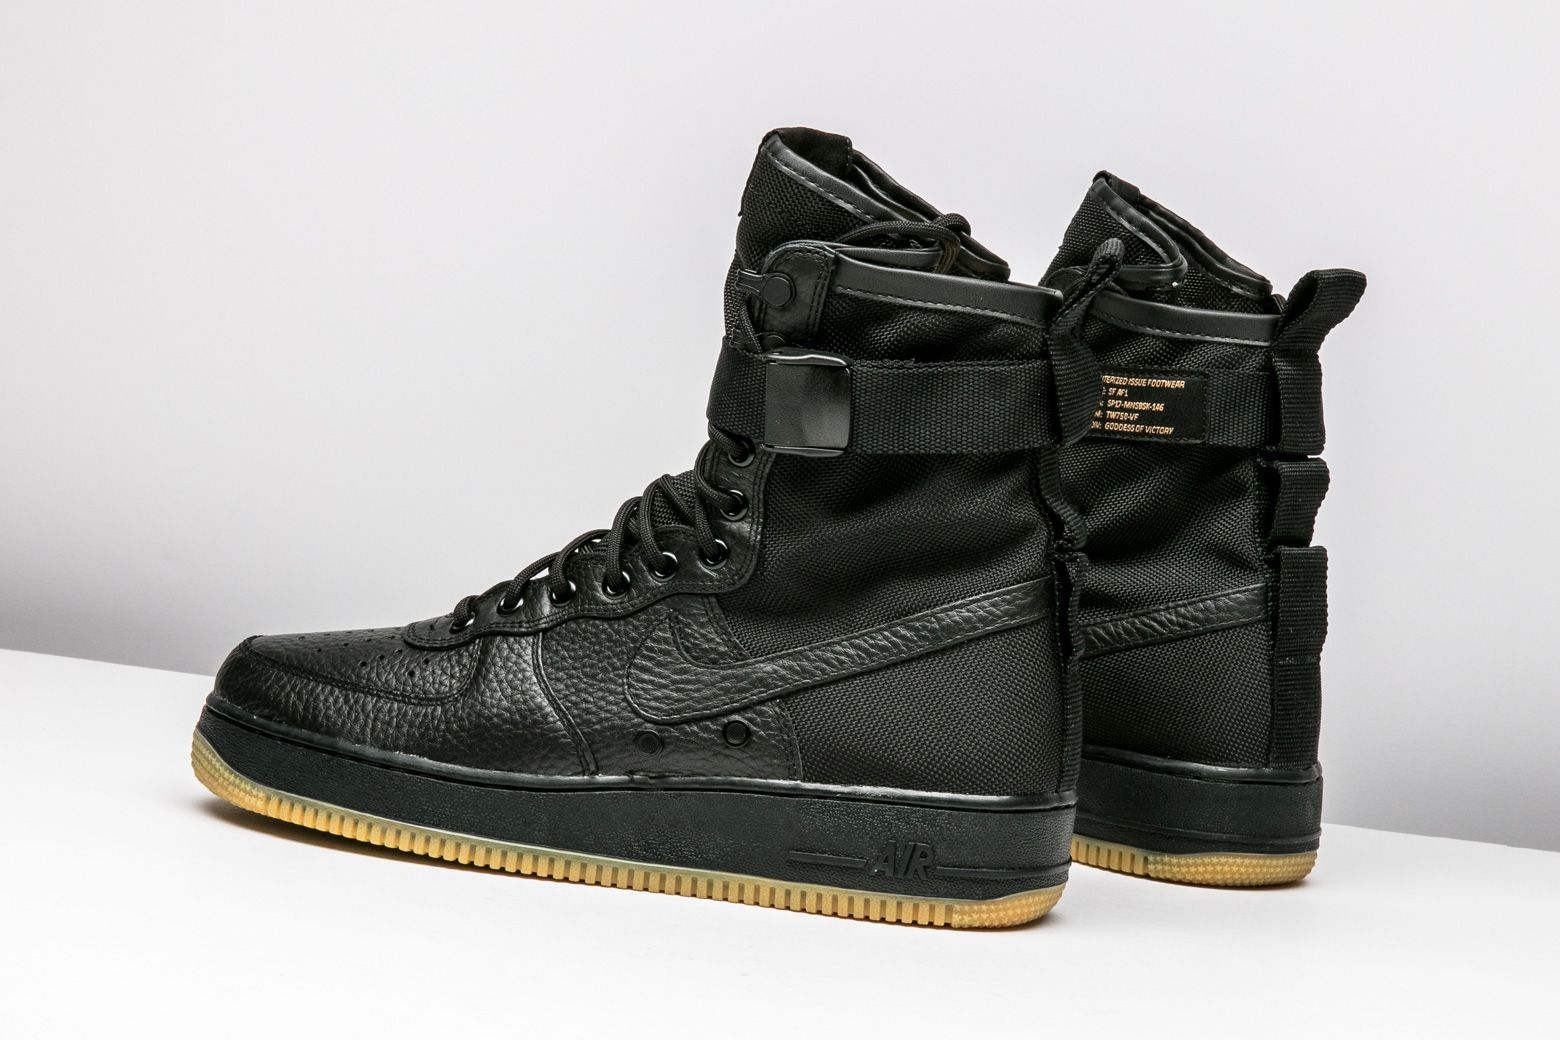 d659ef878b The war-ready Nike SF-Air Force 1 returns, this time featuring a